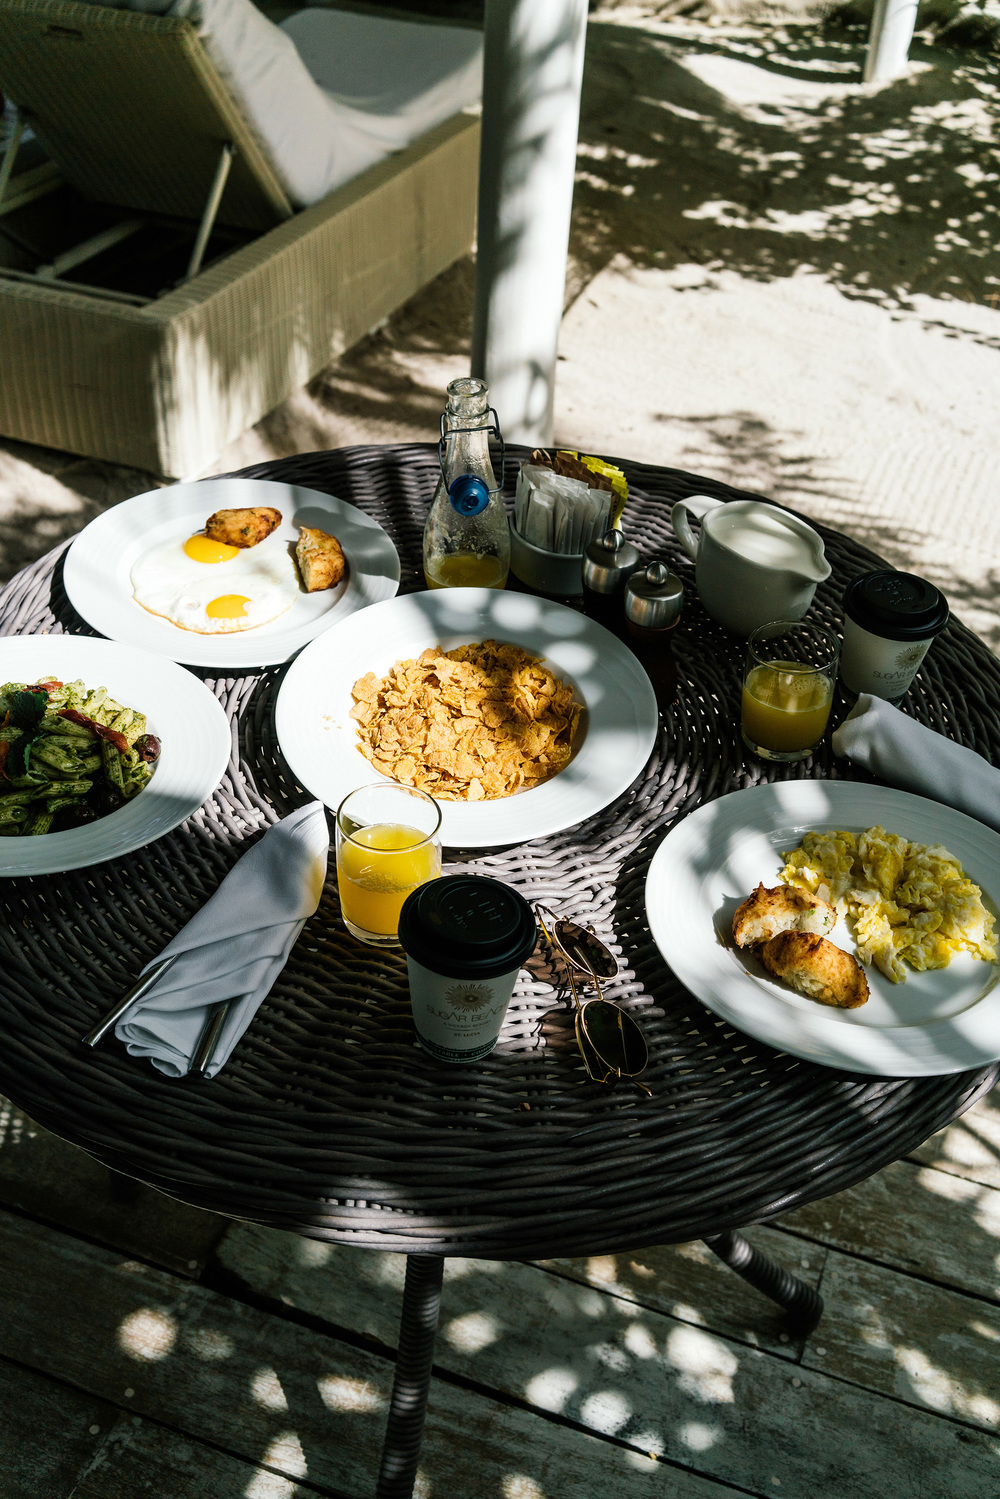 Room service for breakfast on our veranda